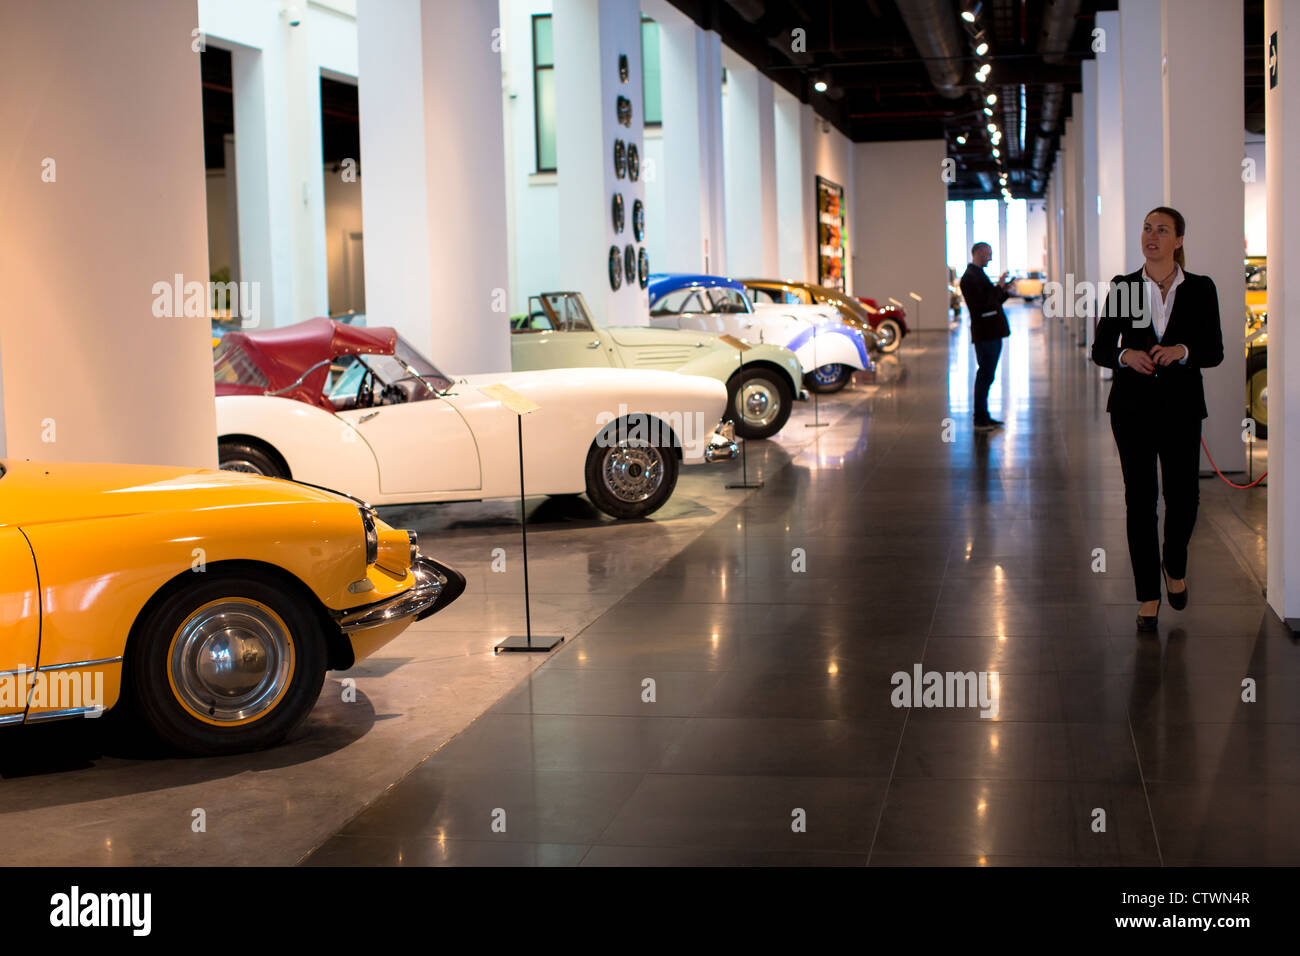 Automobile museum Malaga Spain - Stock Image